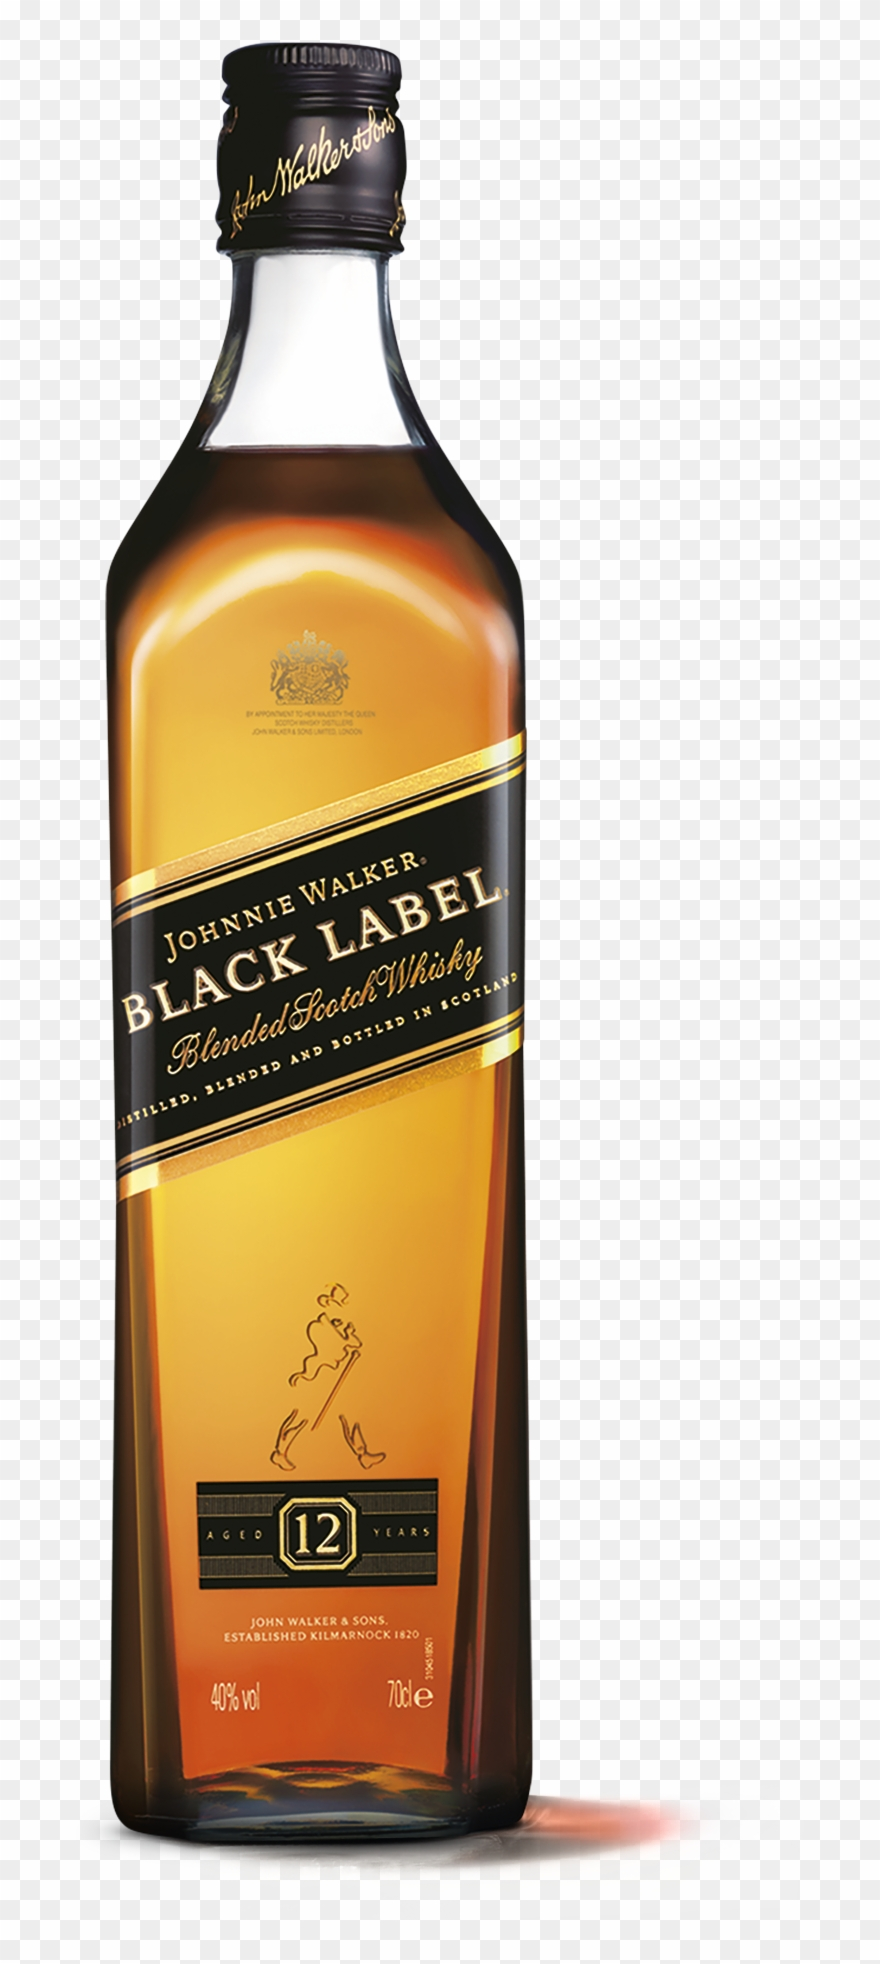 Johnny walker clipart graphic freeuse Johnnie Walker Is The World\'s Number One Scotch Whisky - John Walker ... graphic freeuse